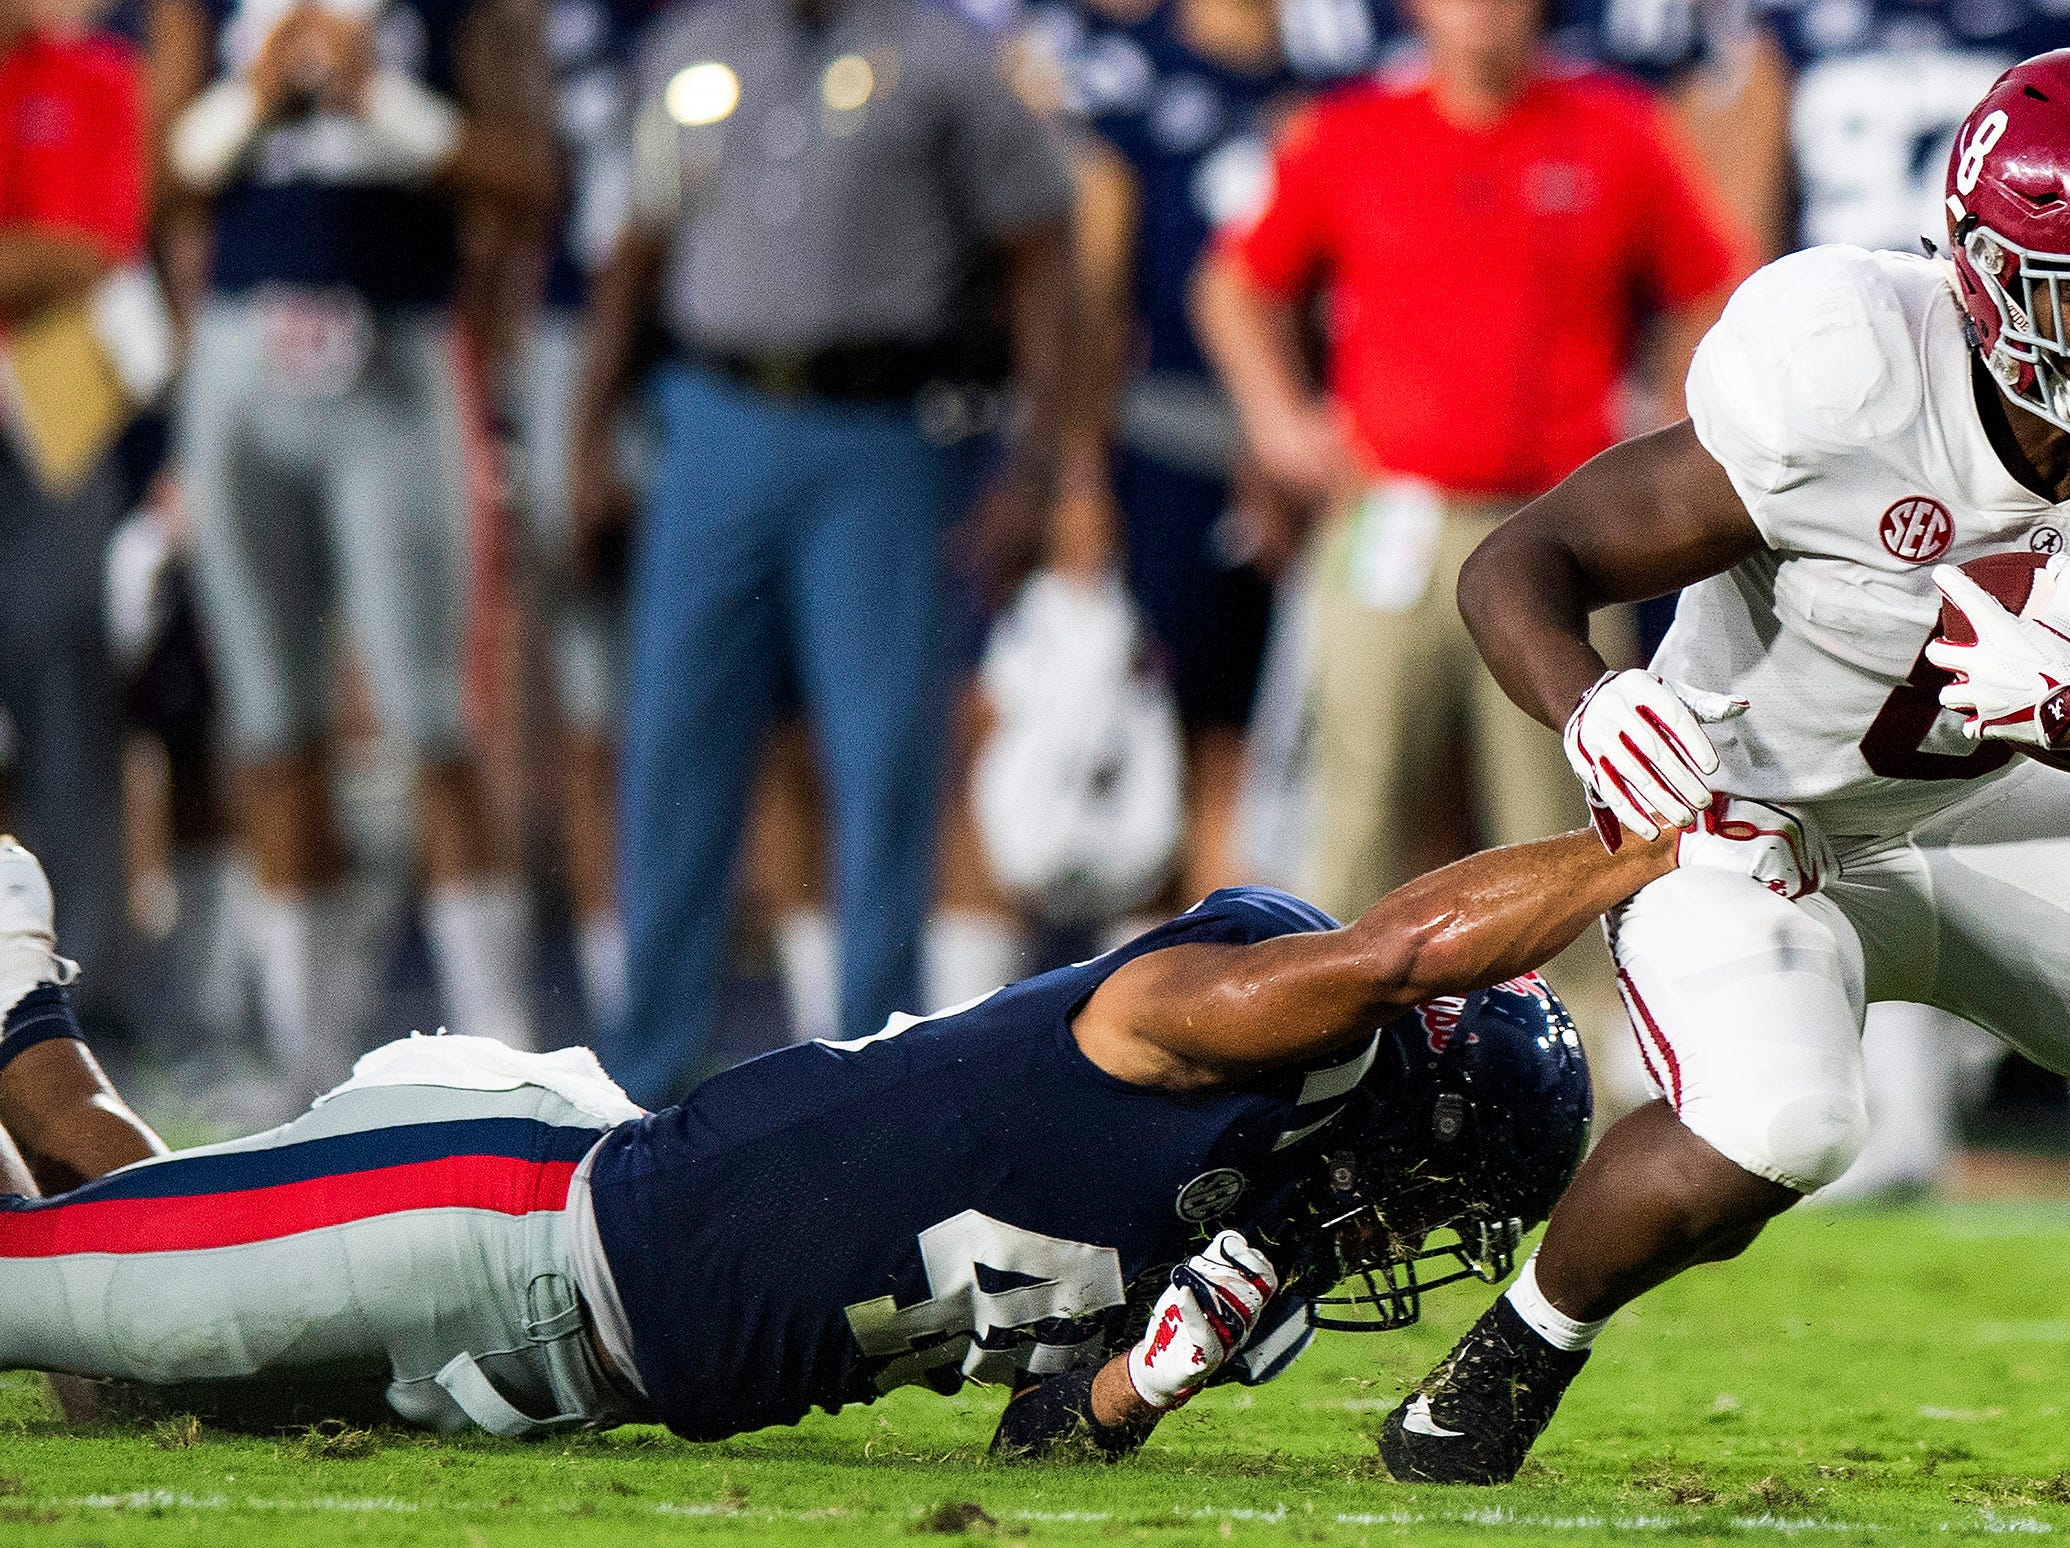 Alabama running back Josh Jacobs (8) eludes the tackle of Ole Miss linebacker Andrew Griffith (48) In first half action in Oxford, Ms., on Saturday September 15, 2018.